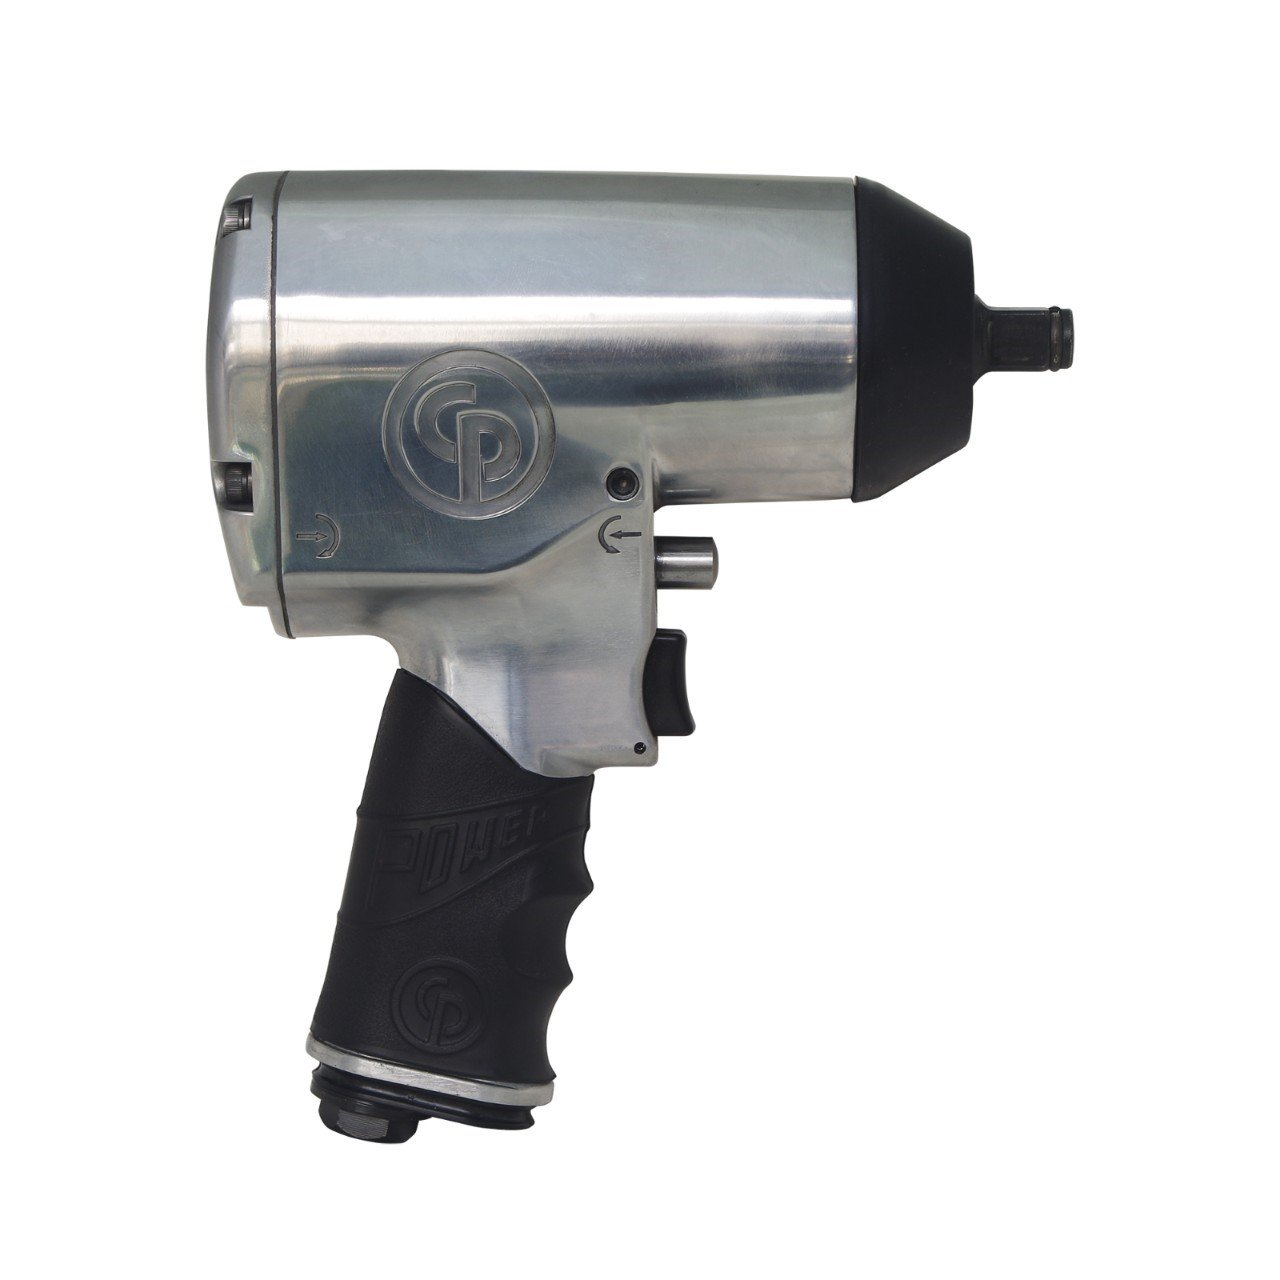 Chicago Pneumatic CP749 1/2-In. Drive Super Duty Air Impact Wrench - Pneumatic Tool with 4-Power Settings. Power and Hand Tools